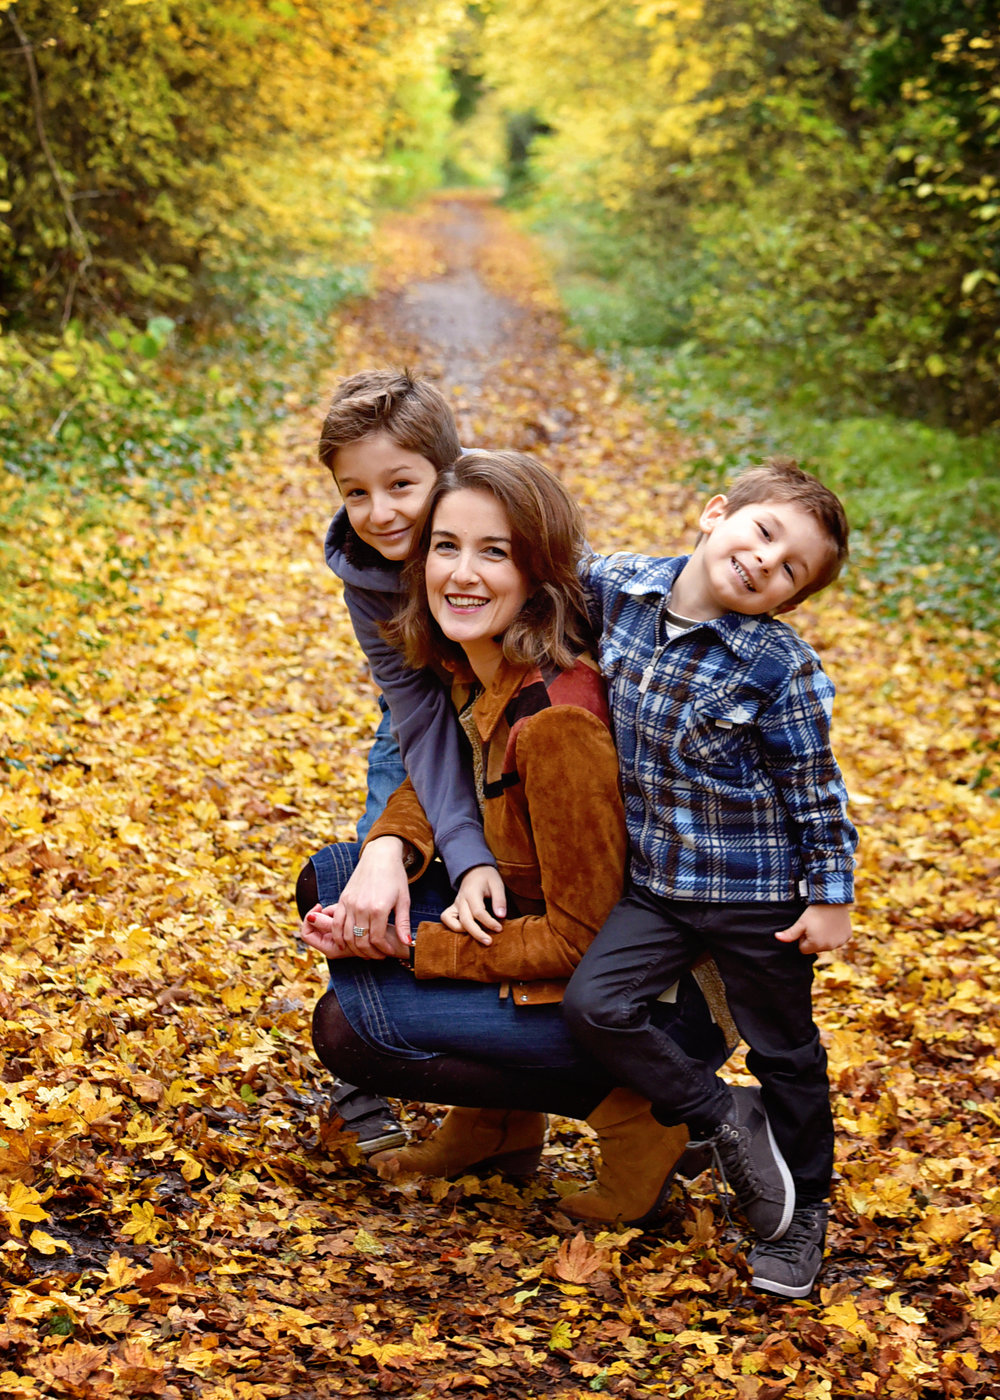 Autumn Days - A perfect Autumn day with a very special family!